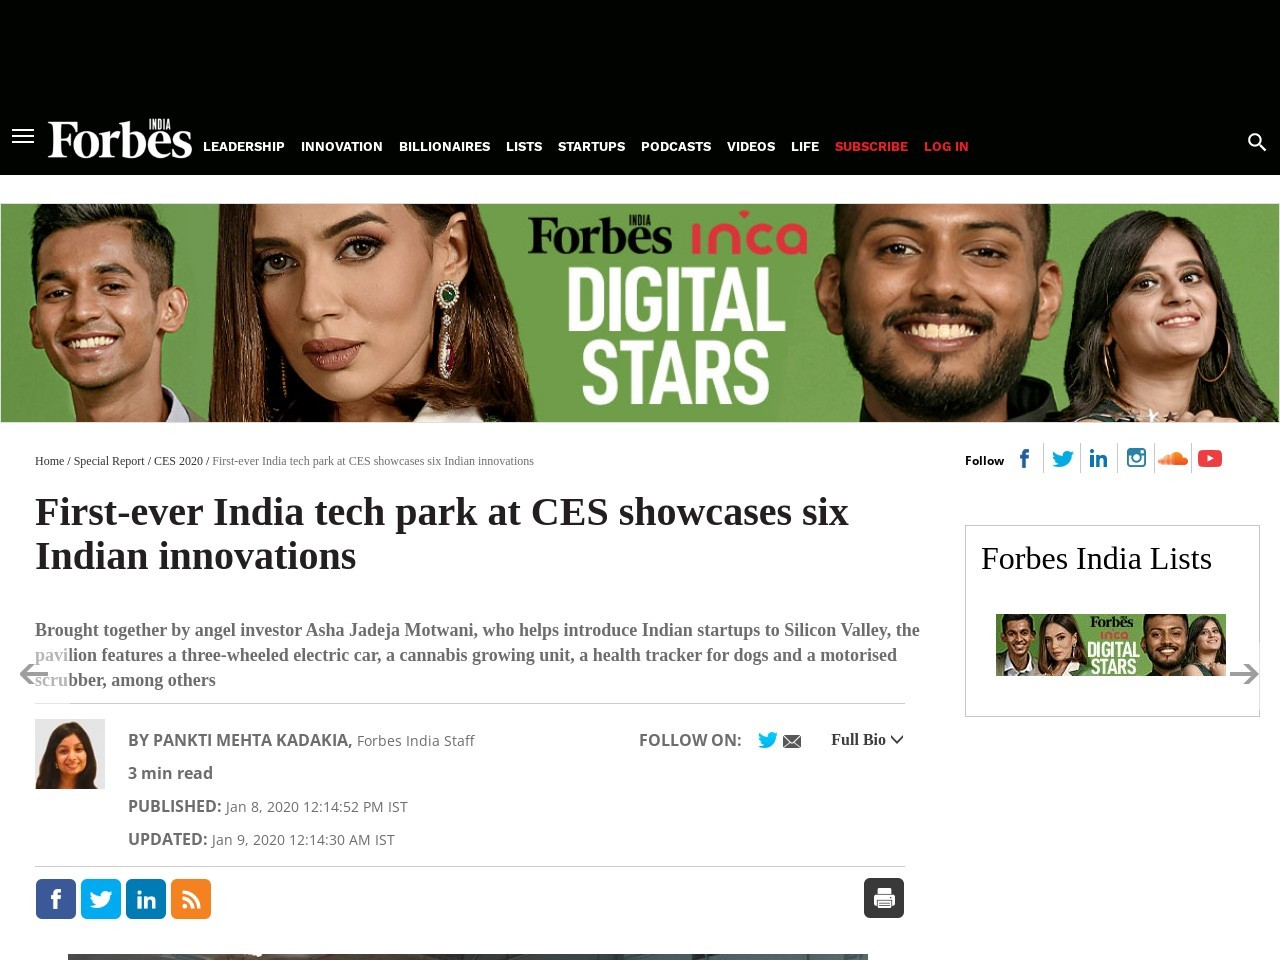 First-ever India tech park at CES showcases six Indian innovations